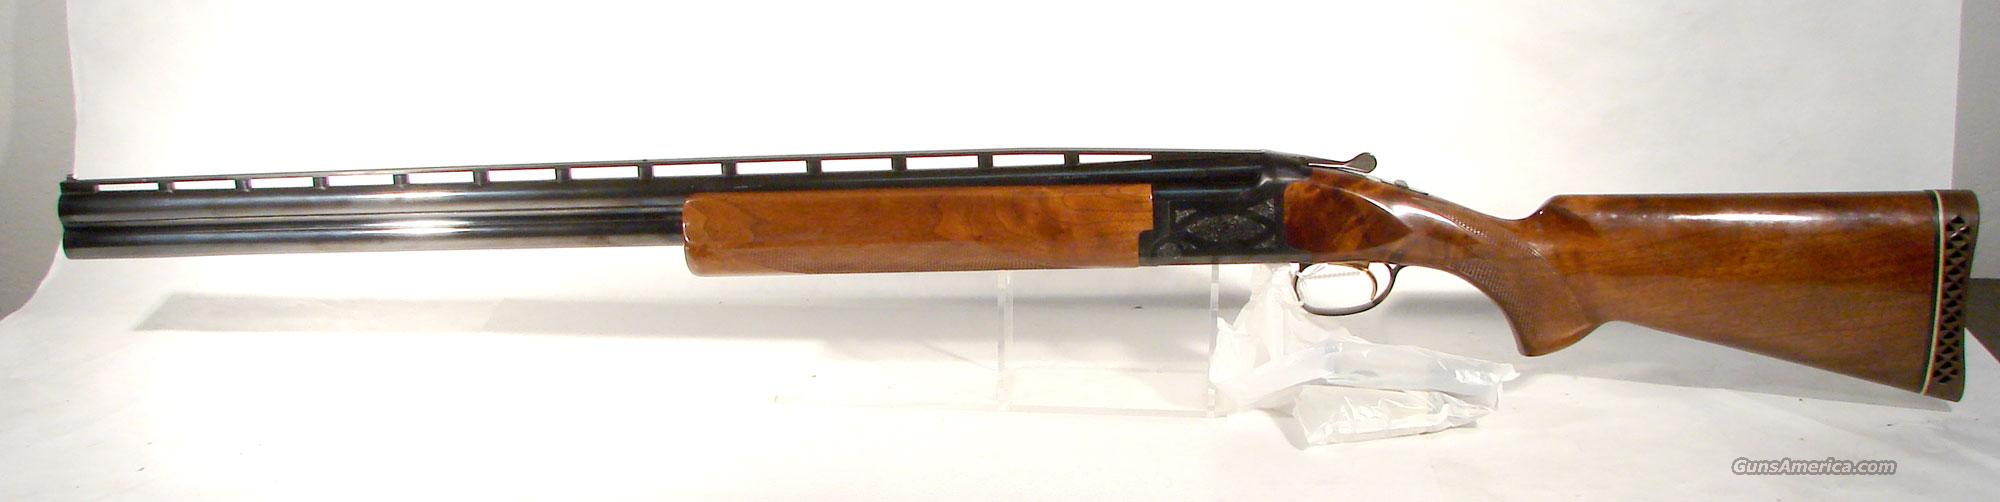 Browning Citori O/U 12G 30 inch.  Guns > Shotguns > Browning Shotguns > Over Unders > Citori > Hunting